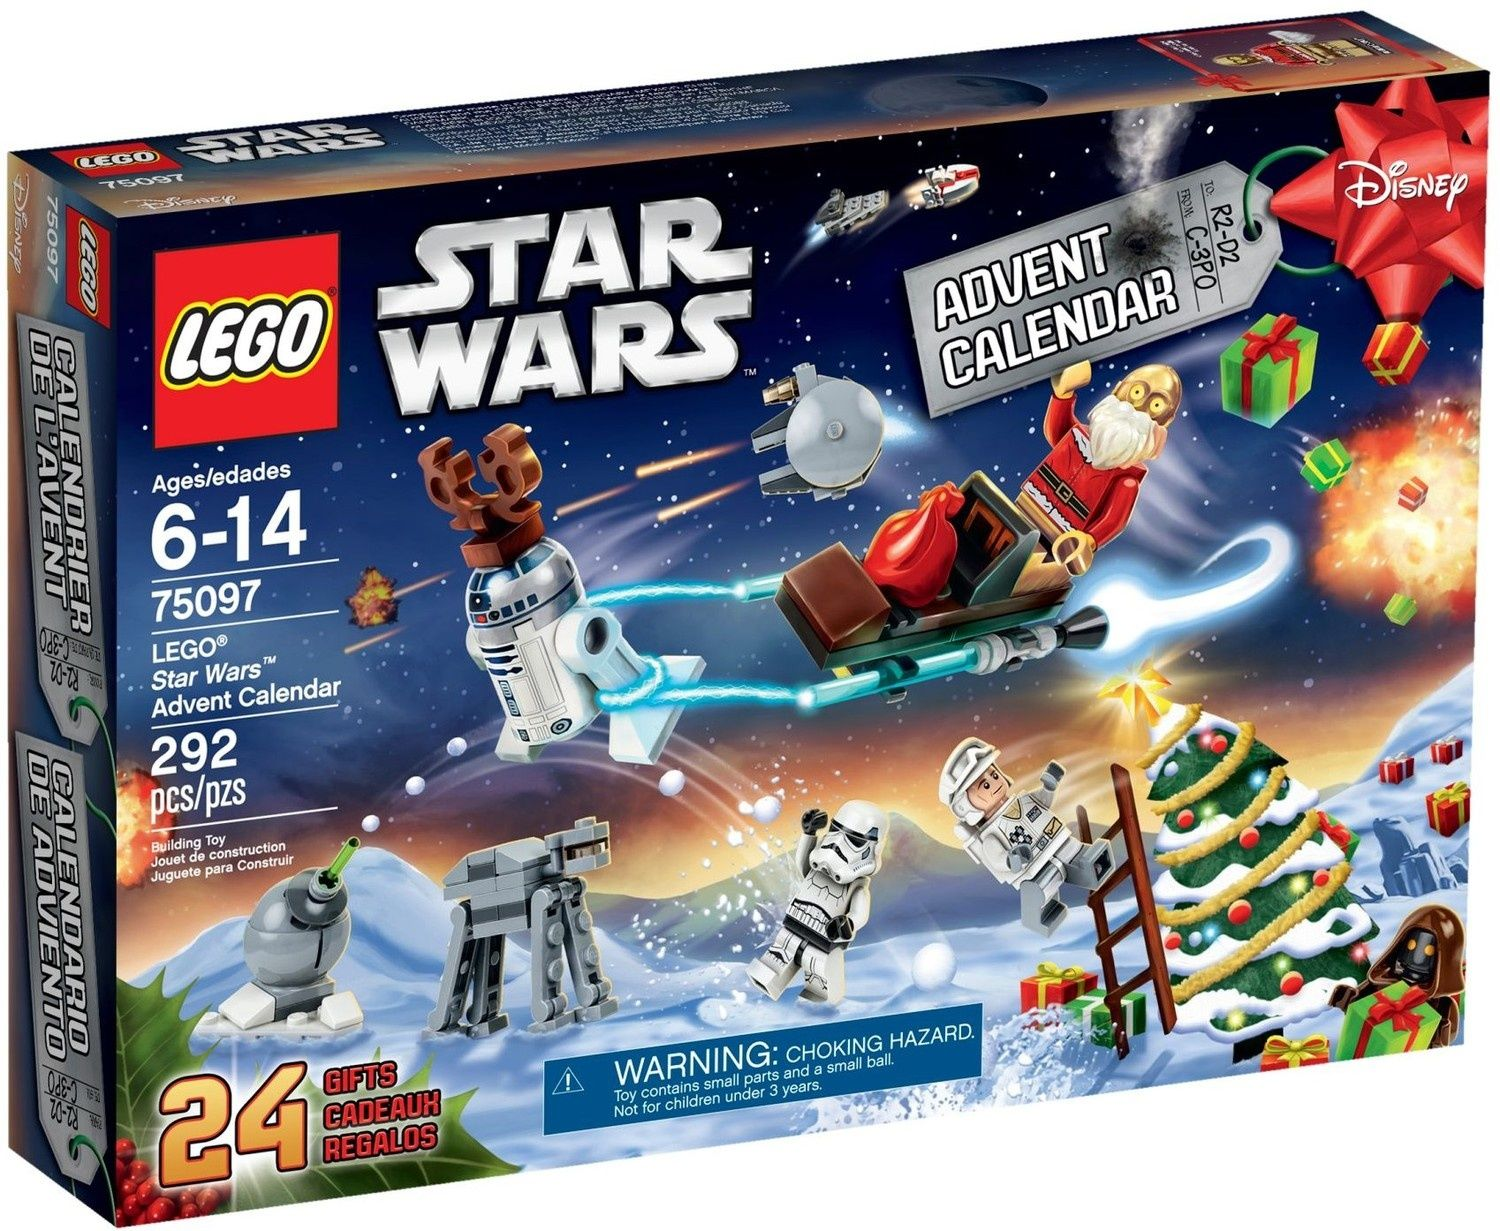 Calendrier Avent Lego Star Wars 2019.Star Wars 2015 Advent Calendar Lego Star Wars Set 75097